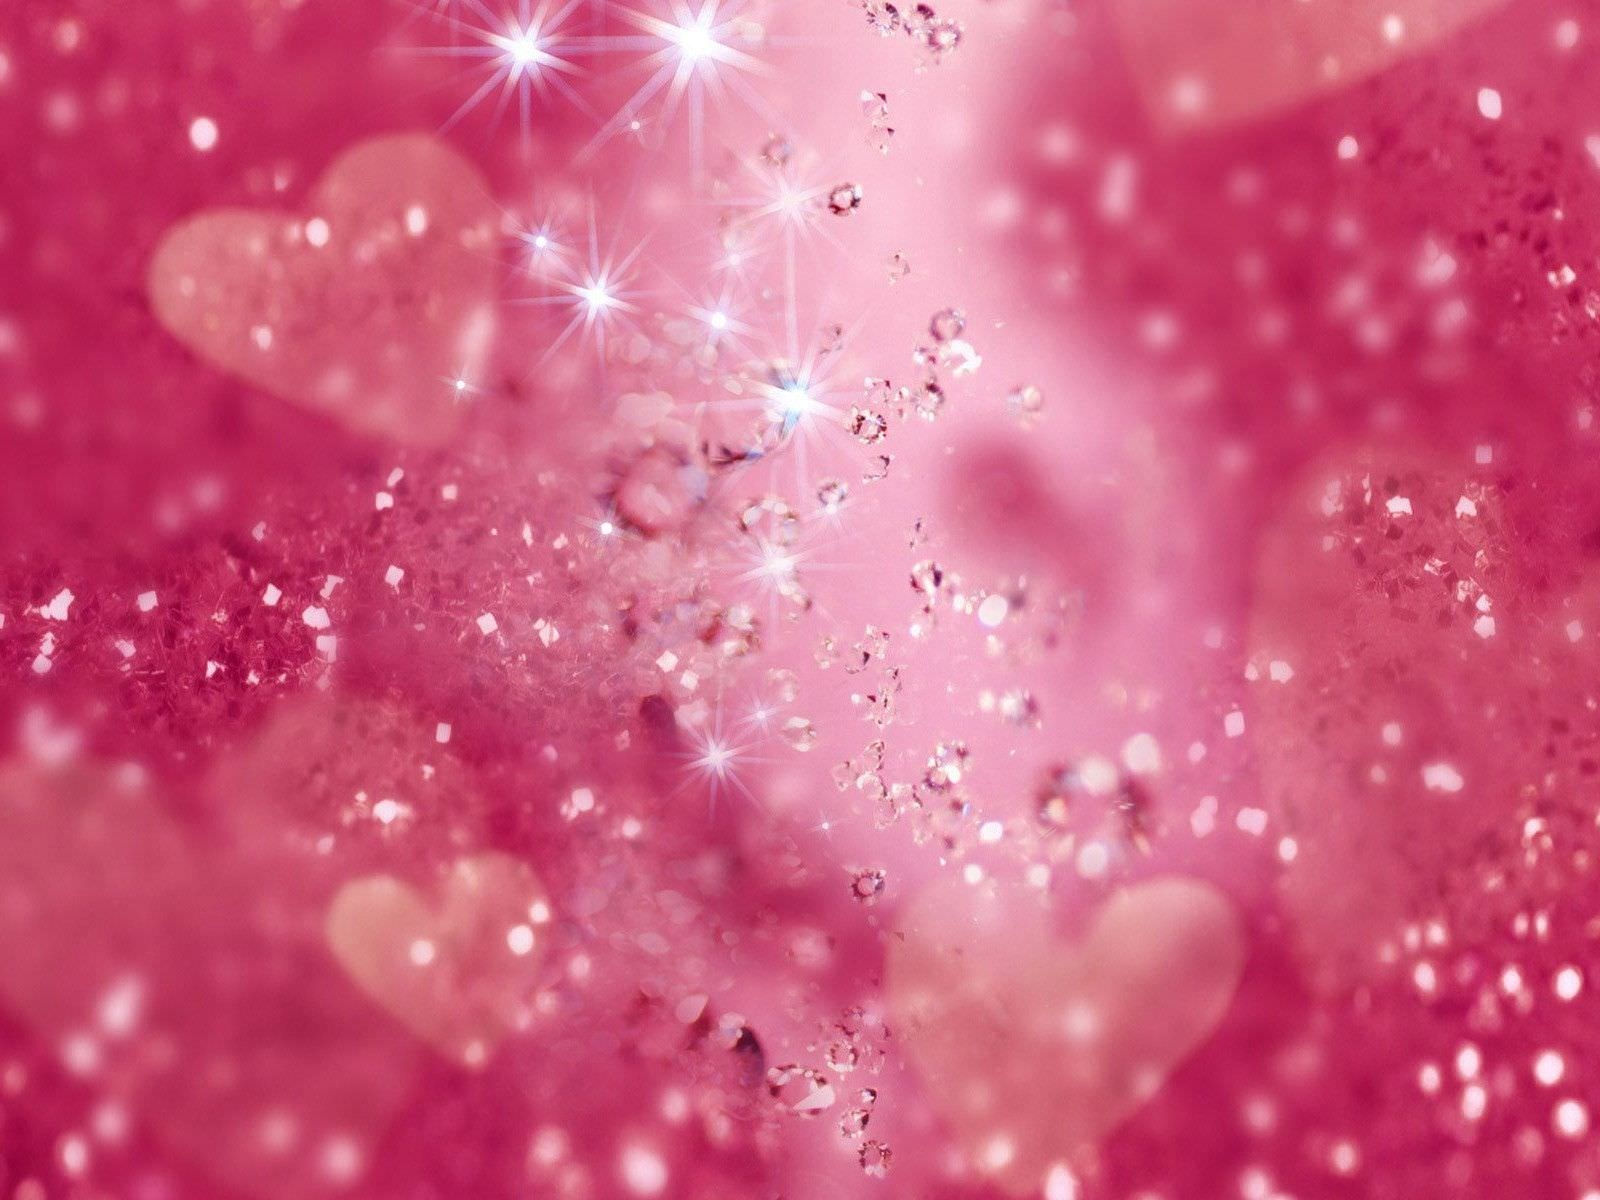 Sparkle-and-Glitters-Background-Wallpaper